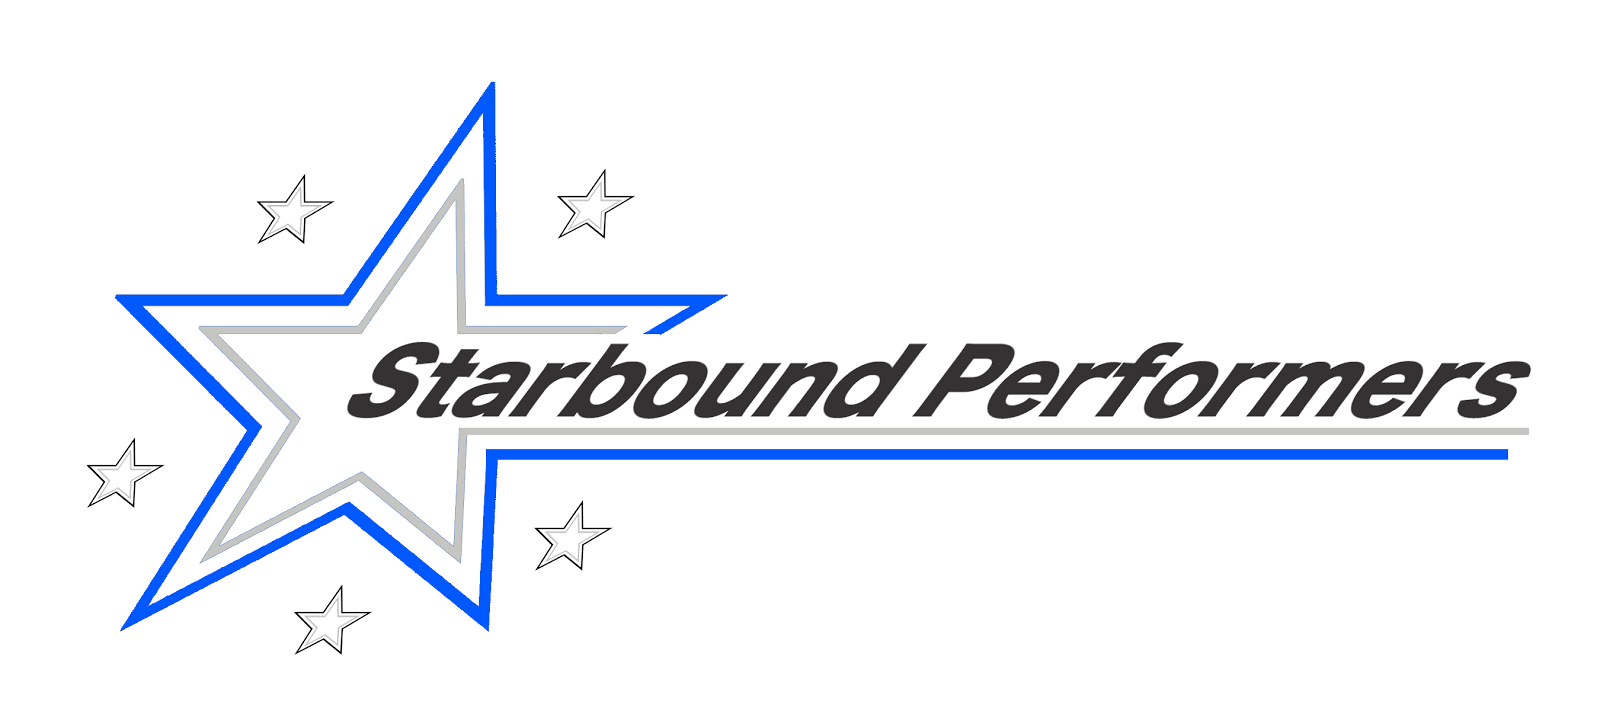 Starbound Performers - Where Every Performer is a Star!